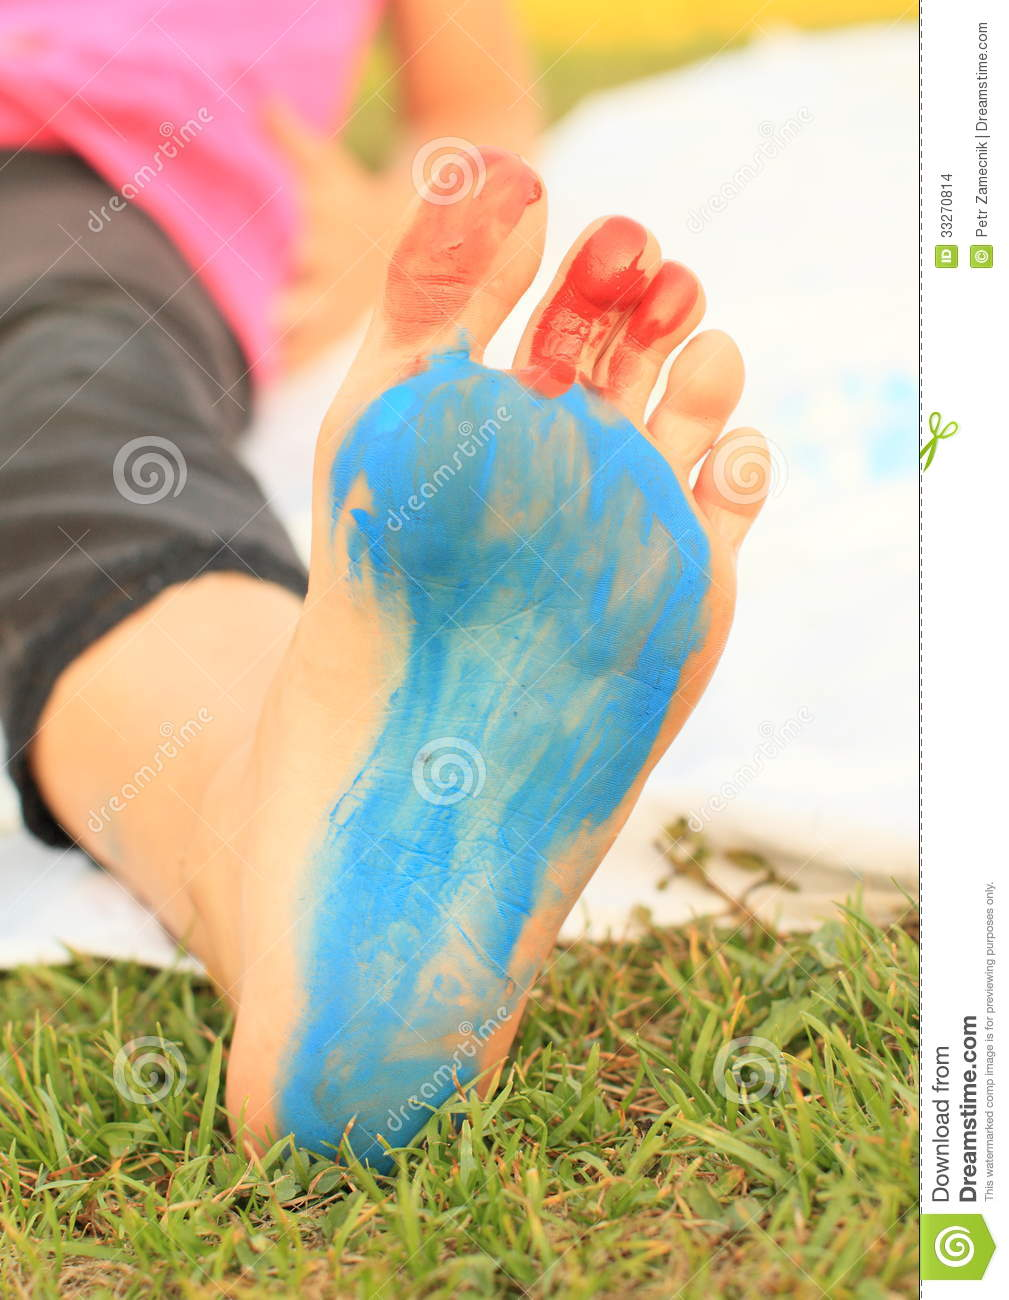 Painted bare foot of a little kid - girl